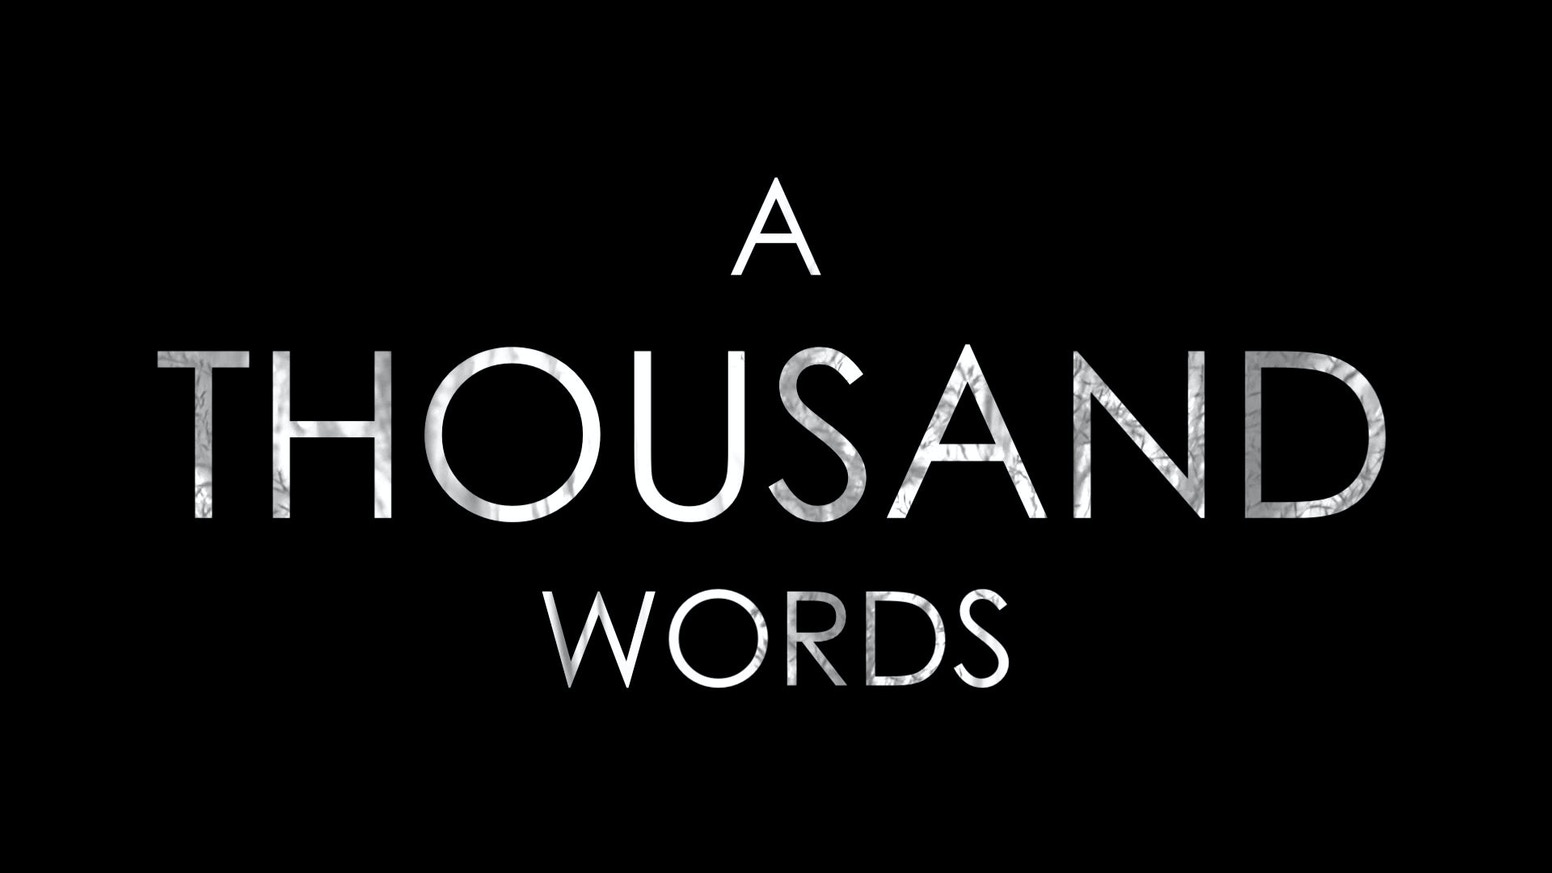 Artist With Autism Illustrates >> A Thousand Words A Documentary About Art And Autism By Richard